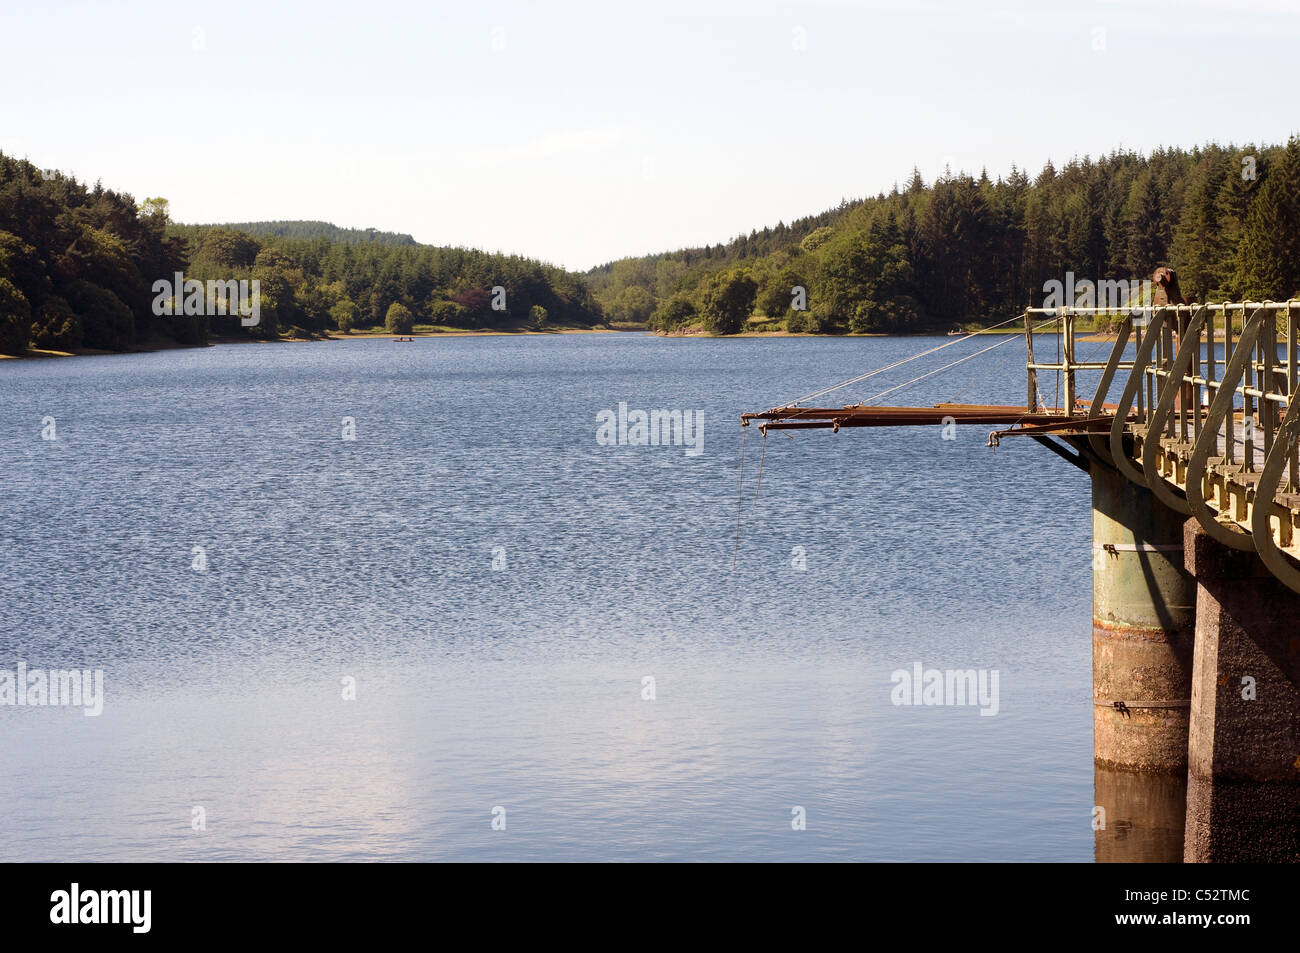 Kennick reservoir,Kennick is known as 'the jewel in the crown of Dartmoor fly fishing',Devon - Stock Image